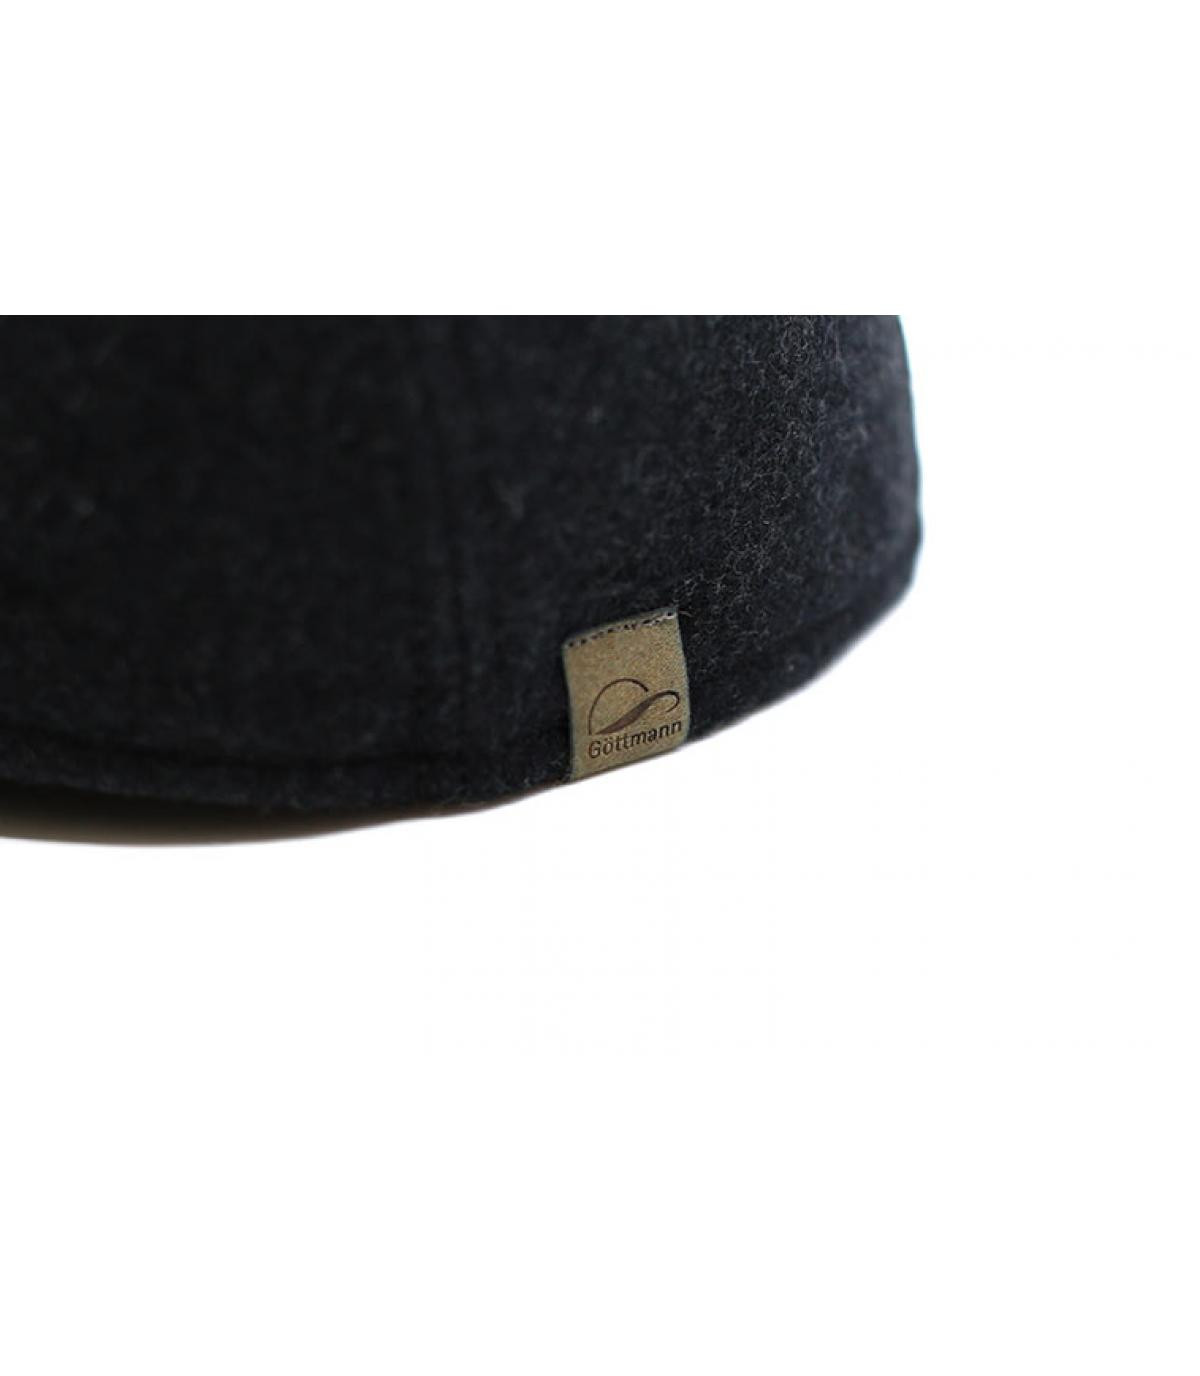 Details Gatsby Wool anthracite - afbeeling 3